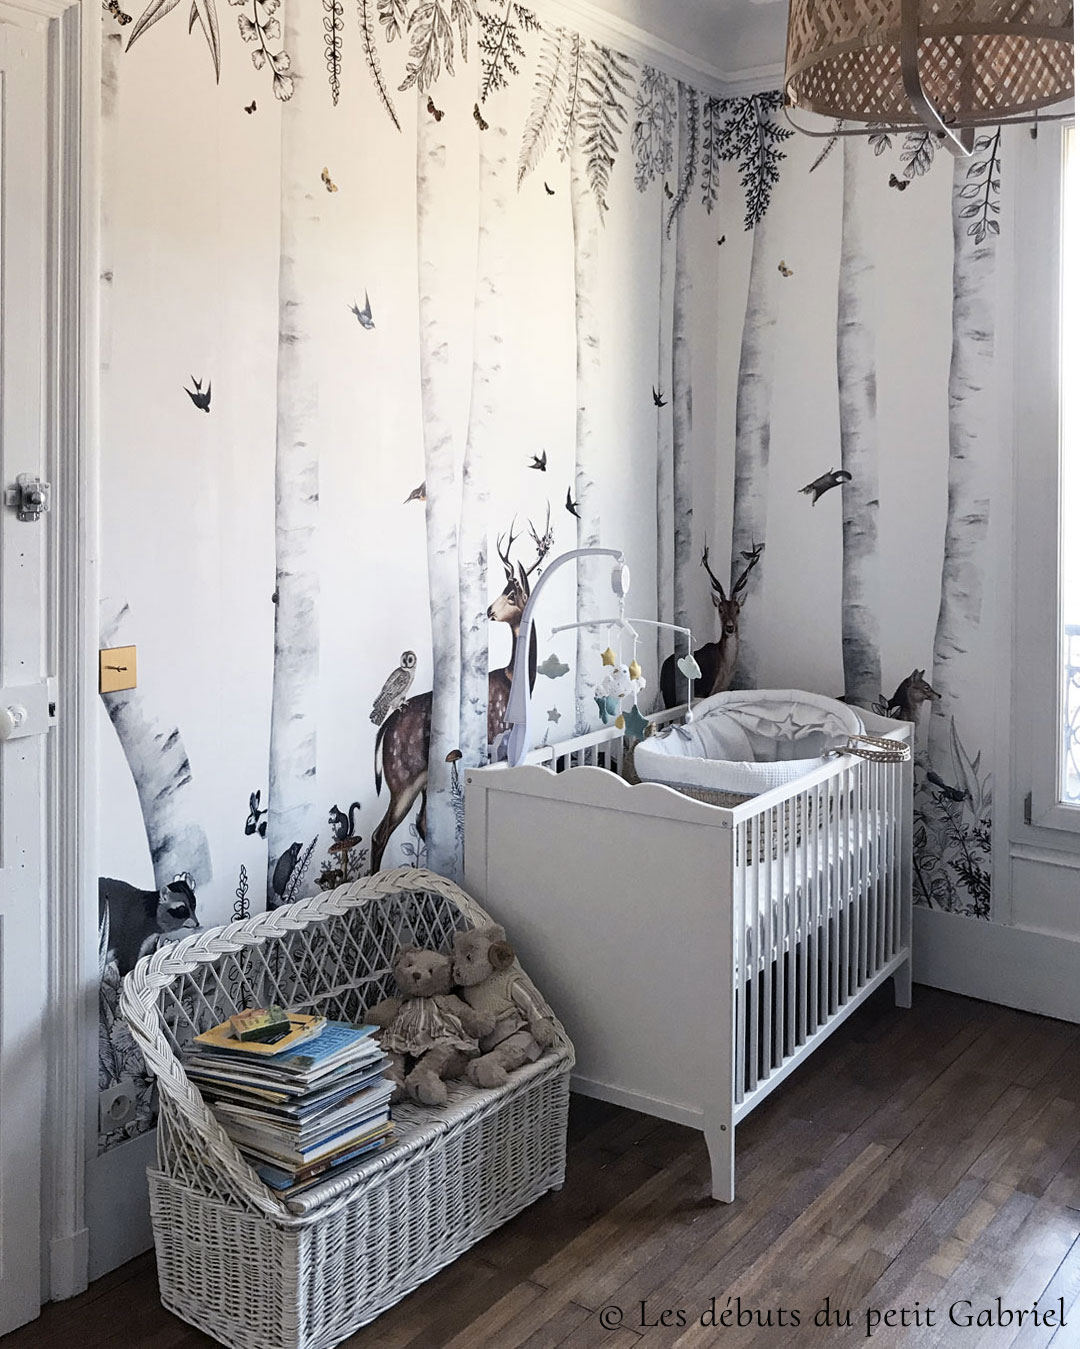 Wallpaper for baby's room - Forest animals - Bespoke wall mural Woody Chesnut by Les Dominotiers © Les débuts du petit Gabriel